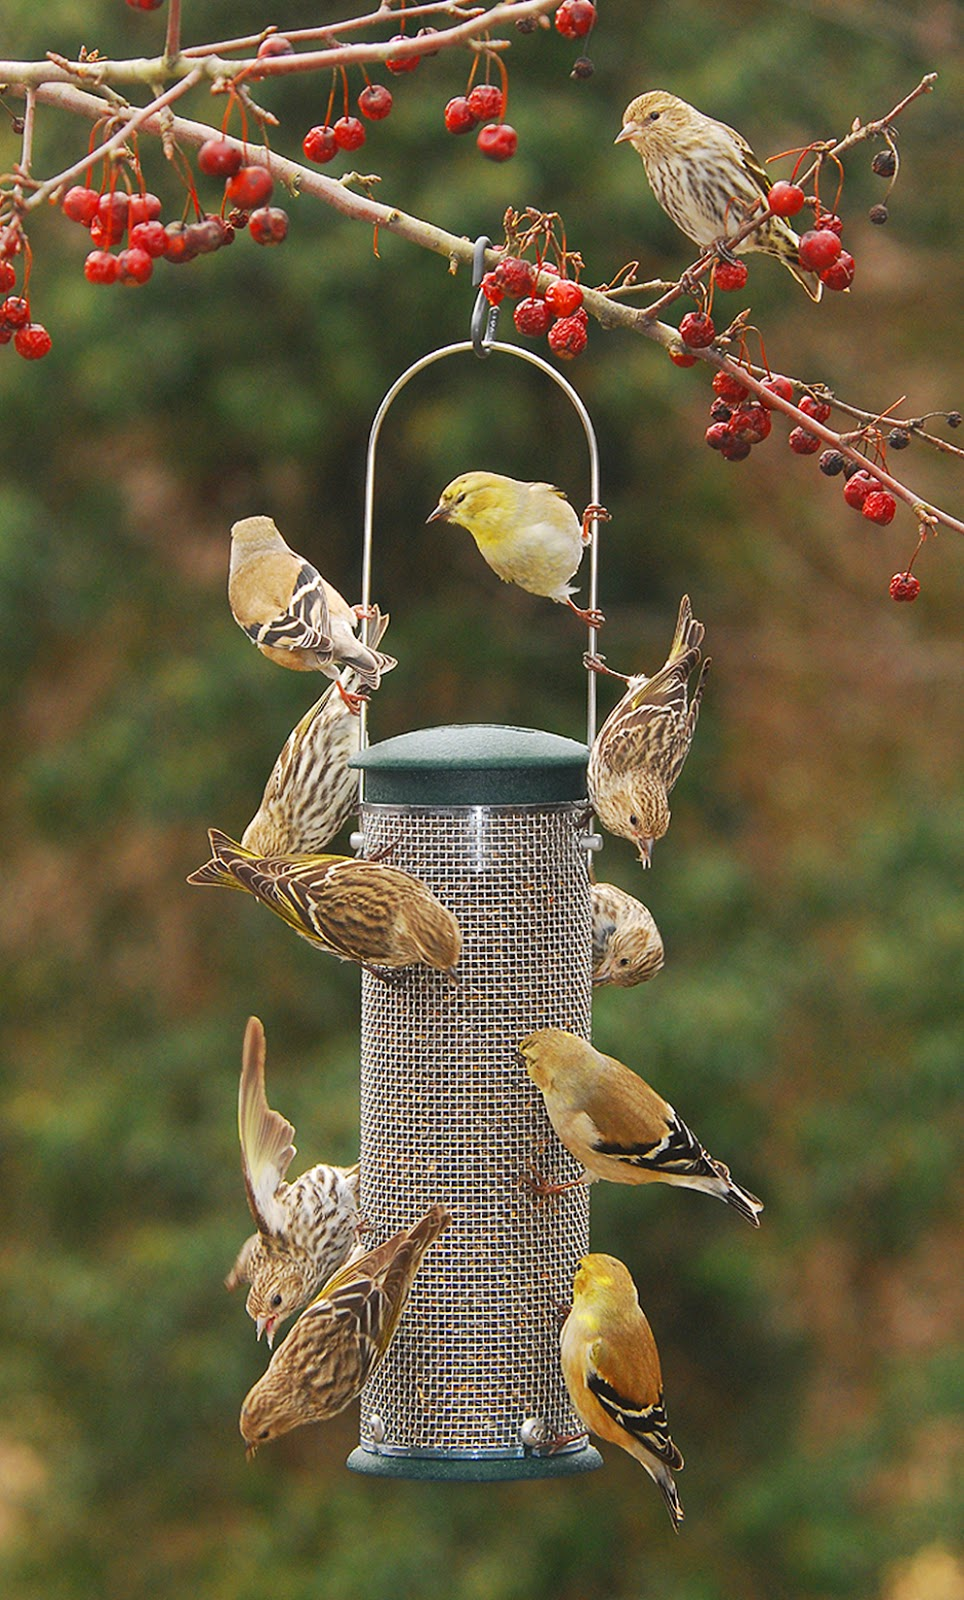 feeder qt forever feeders product nyjer bird display yellow prod thistle gs com at drsfostersmith wbird wild cfm